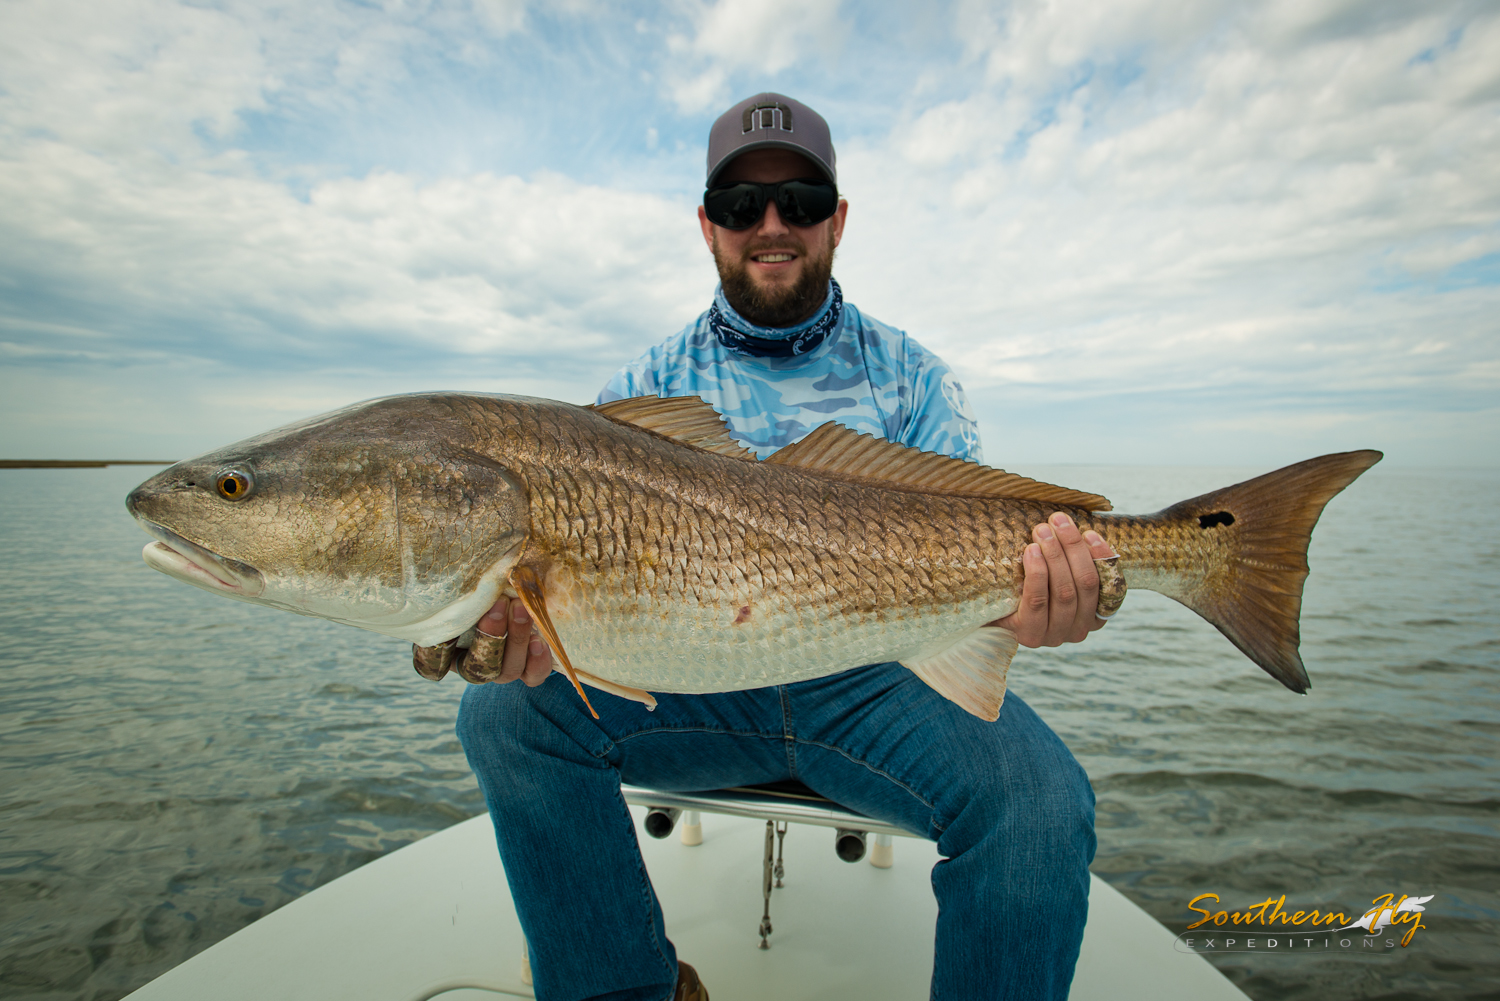 2017-02-06_SouthernFlyExpeditions_PatrickLawrence-5.jpg